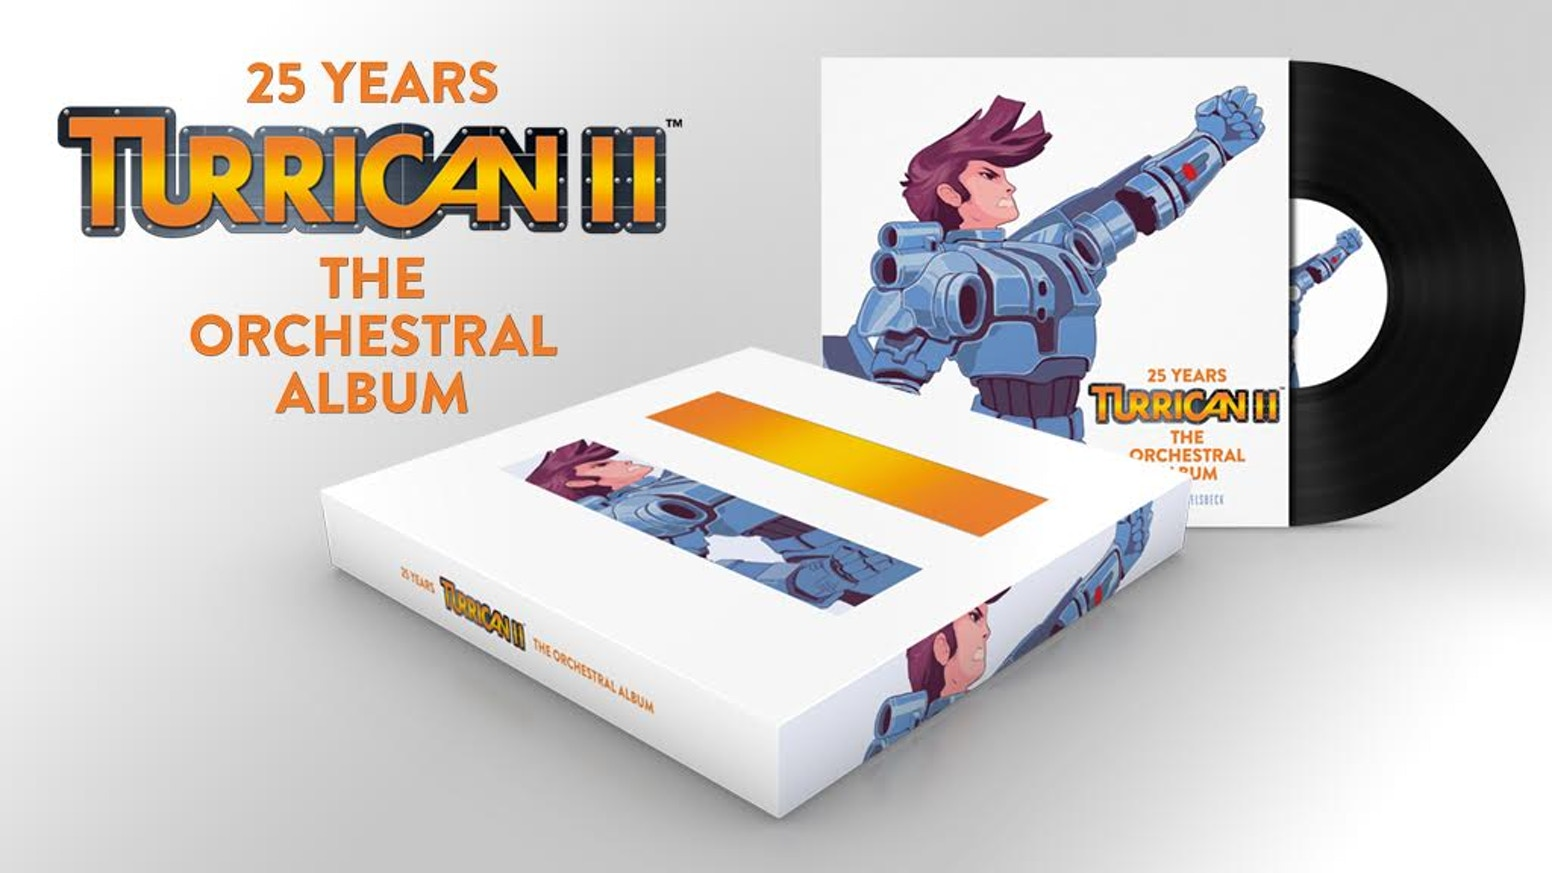 Chris Huelsbeck is creating a limited Collector's Edition Box Set featuring new live orchestra recordings of music from Turrican II!